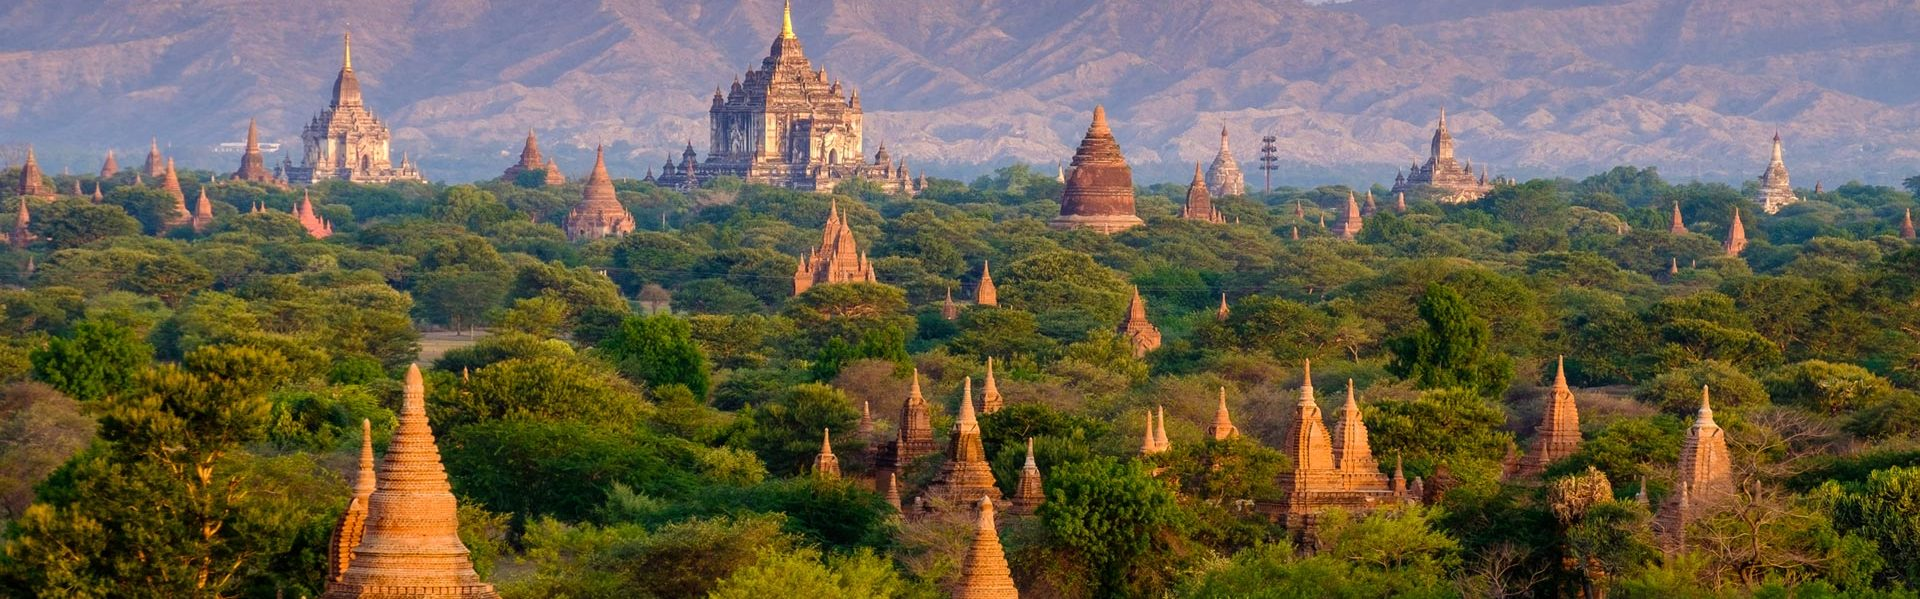 Myanmar Honeymoons - 5* Luxury Trips